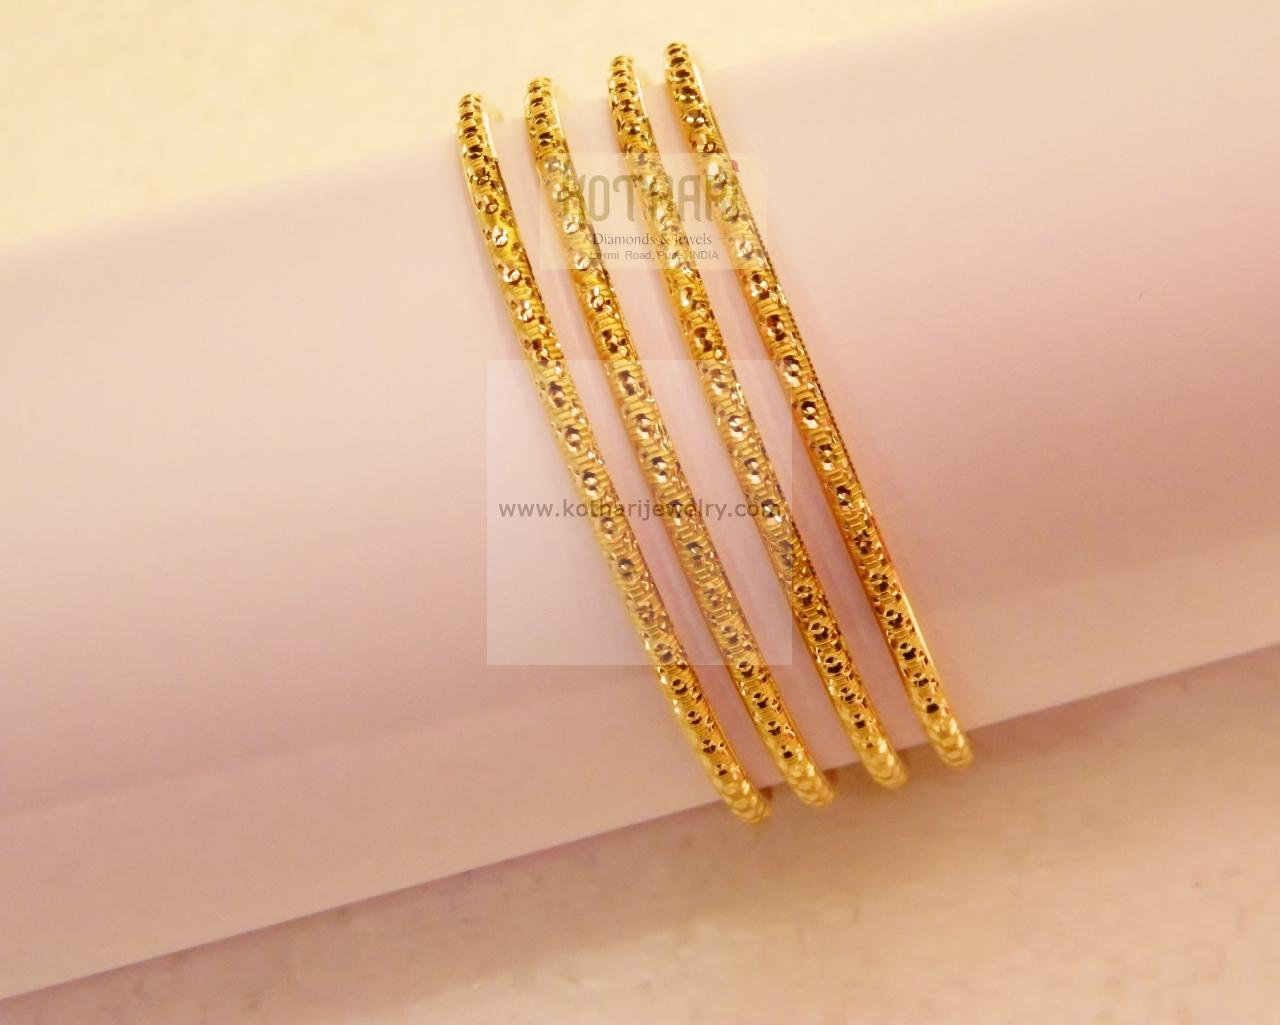 amazon infused com yellow resin textured bracelet karat and bangle dp gold nano jewelry bracelets diamond with bangles